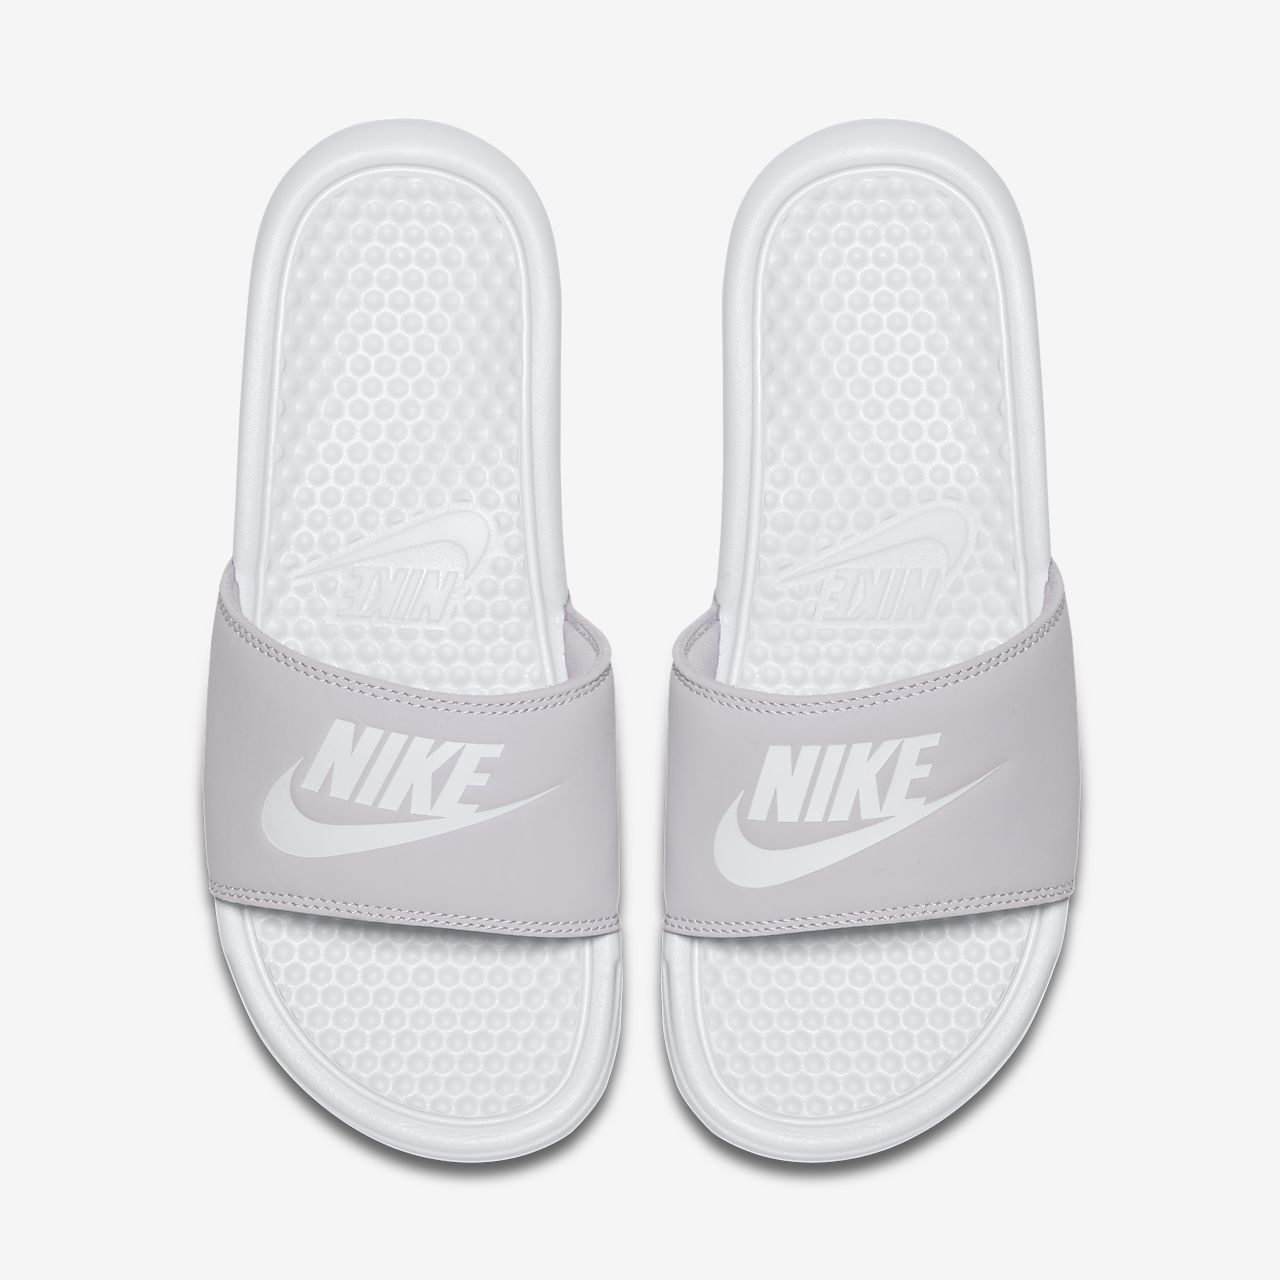 Nike Benassi Pastel QS Women's Slide Orange LZ0376462